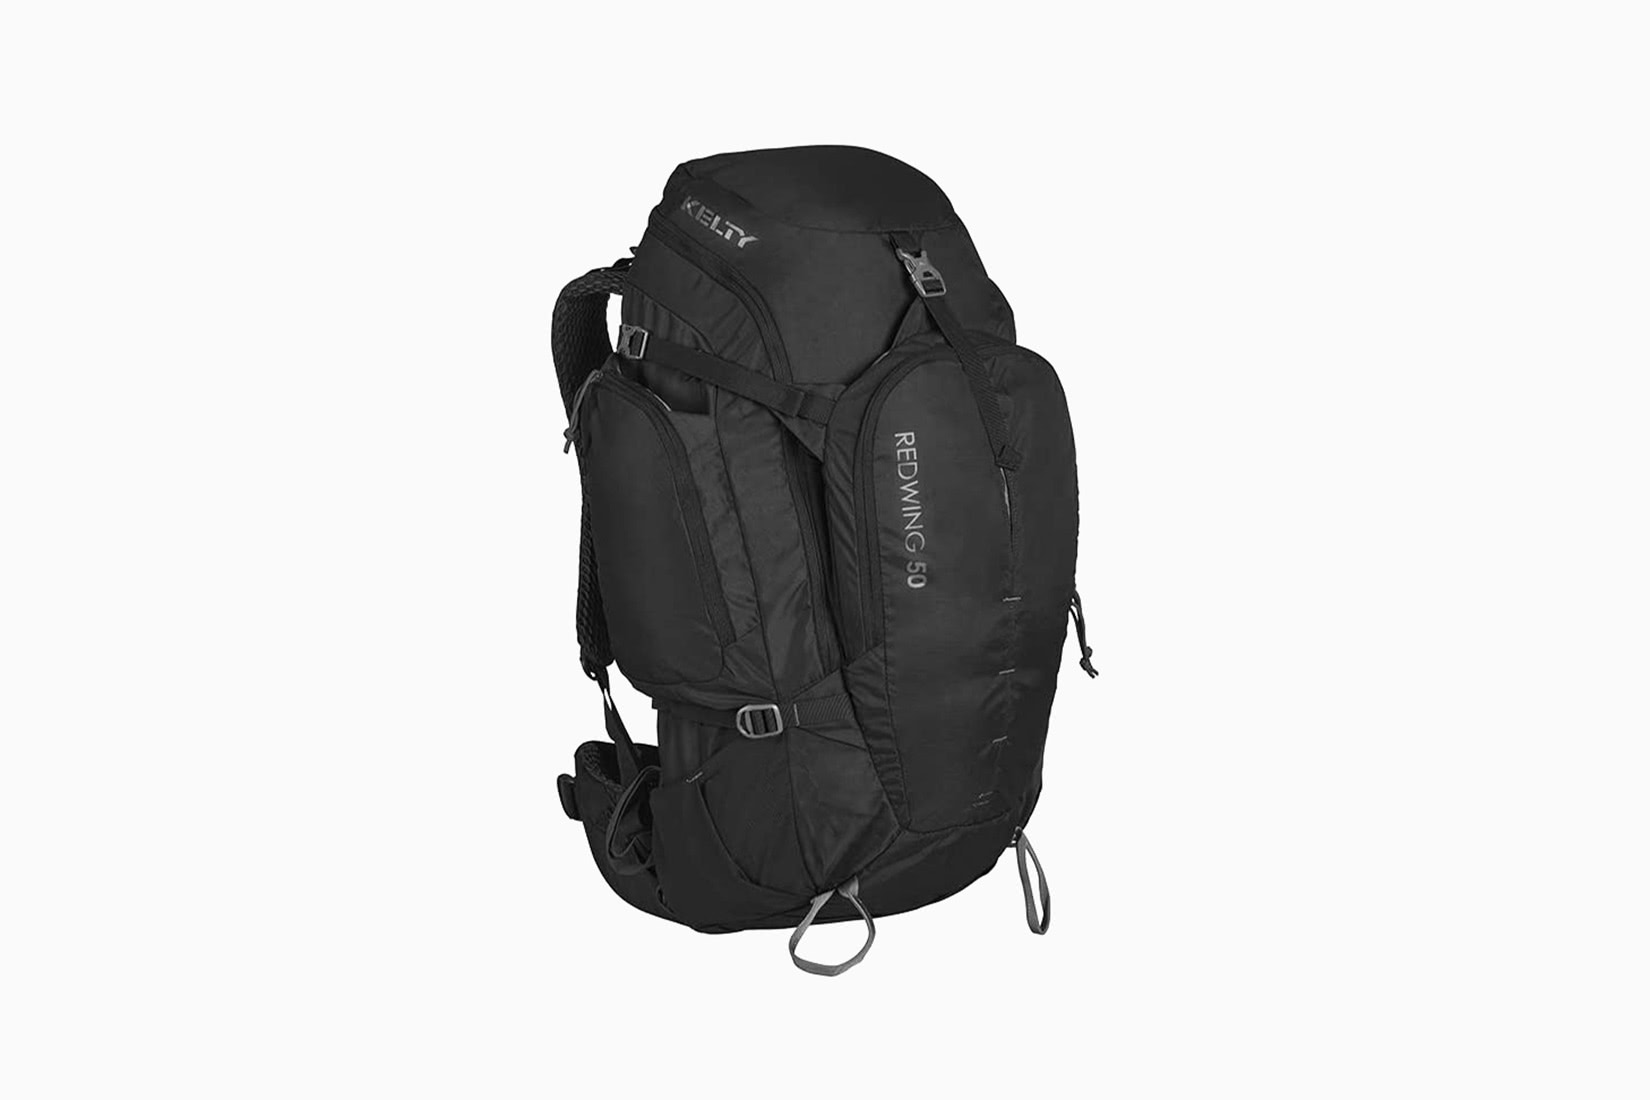 best travel backpack kelty redwing 50 - Luxe Digital